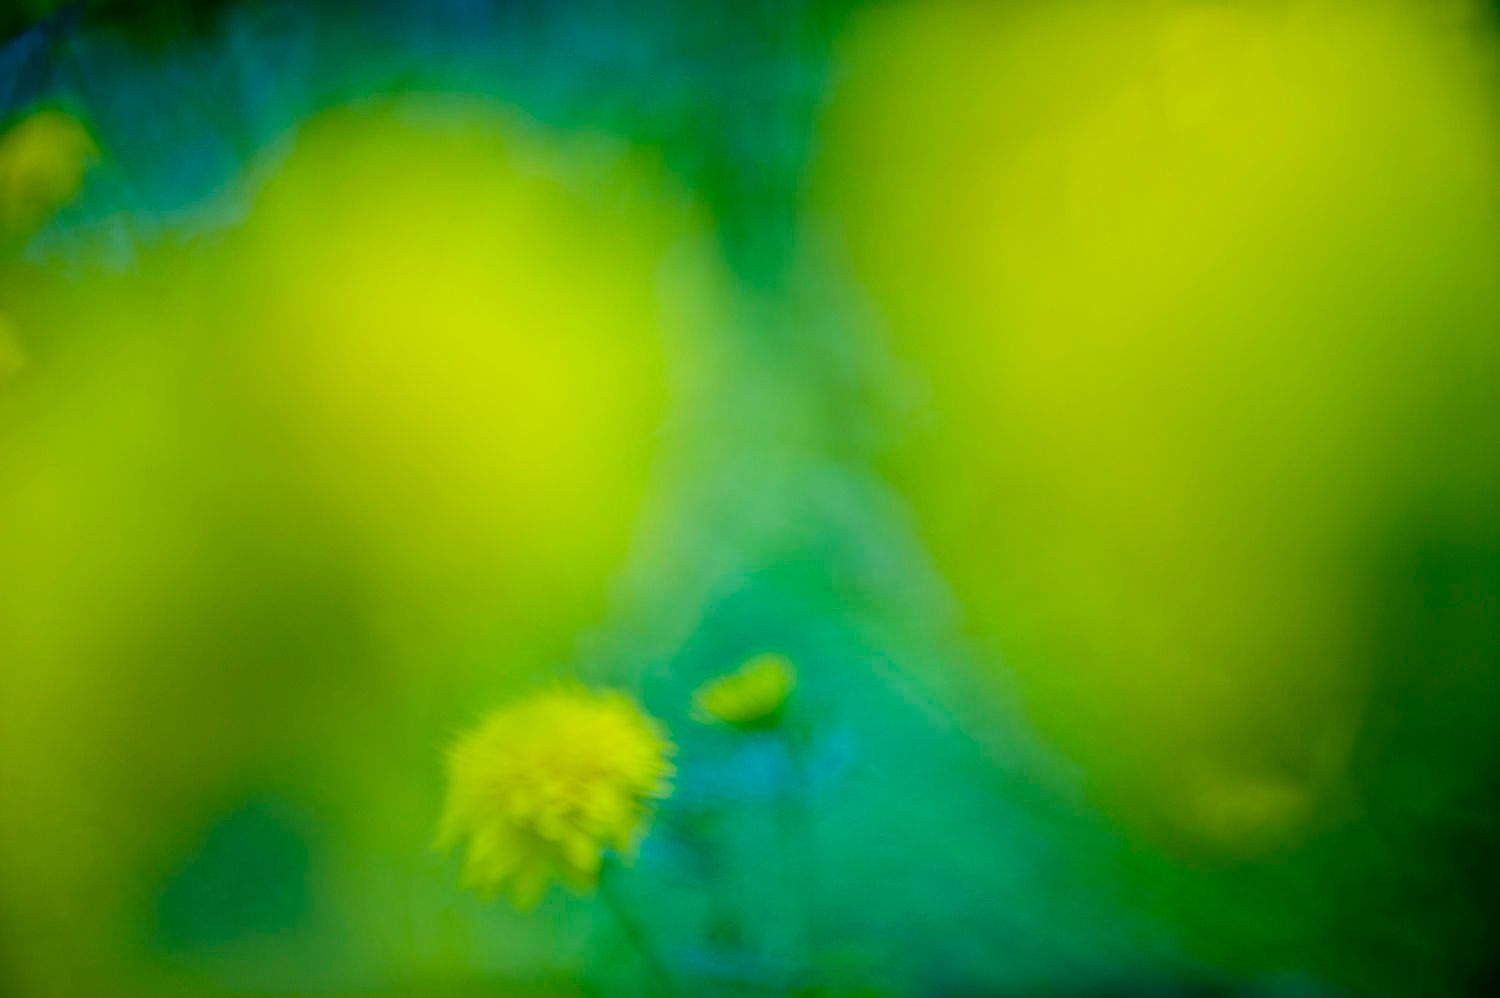 Abstract and Blurred: Yellow Flowers